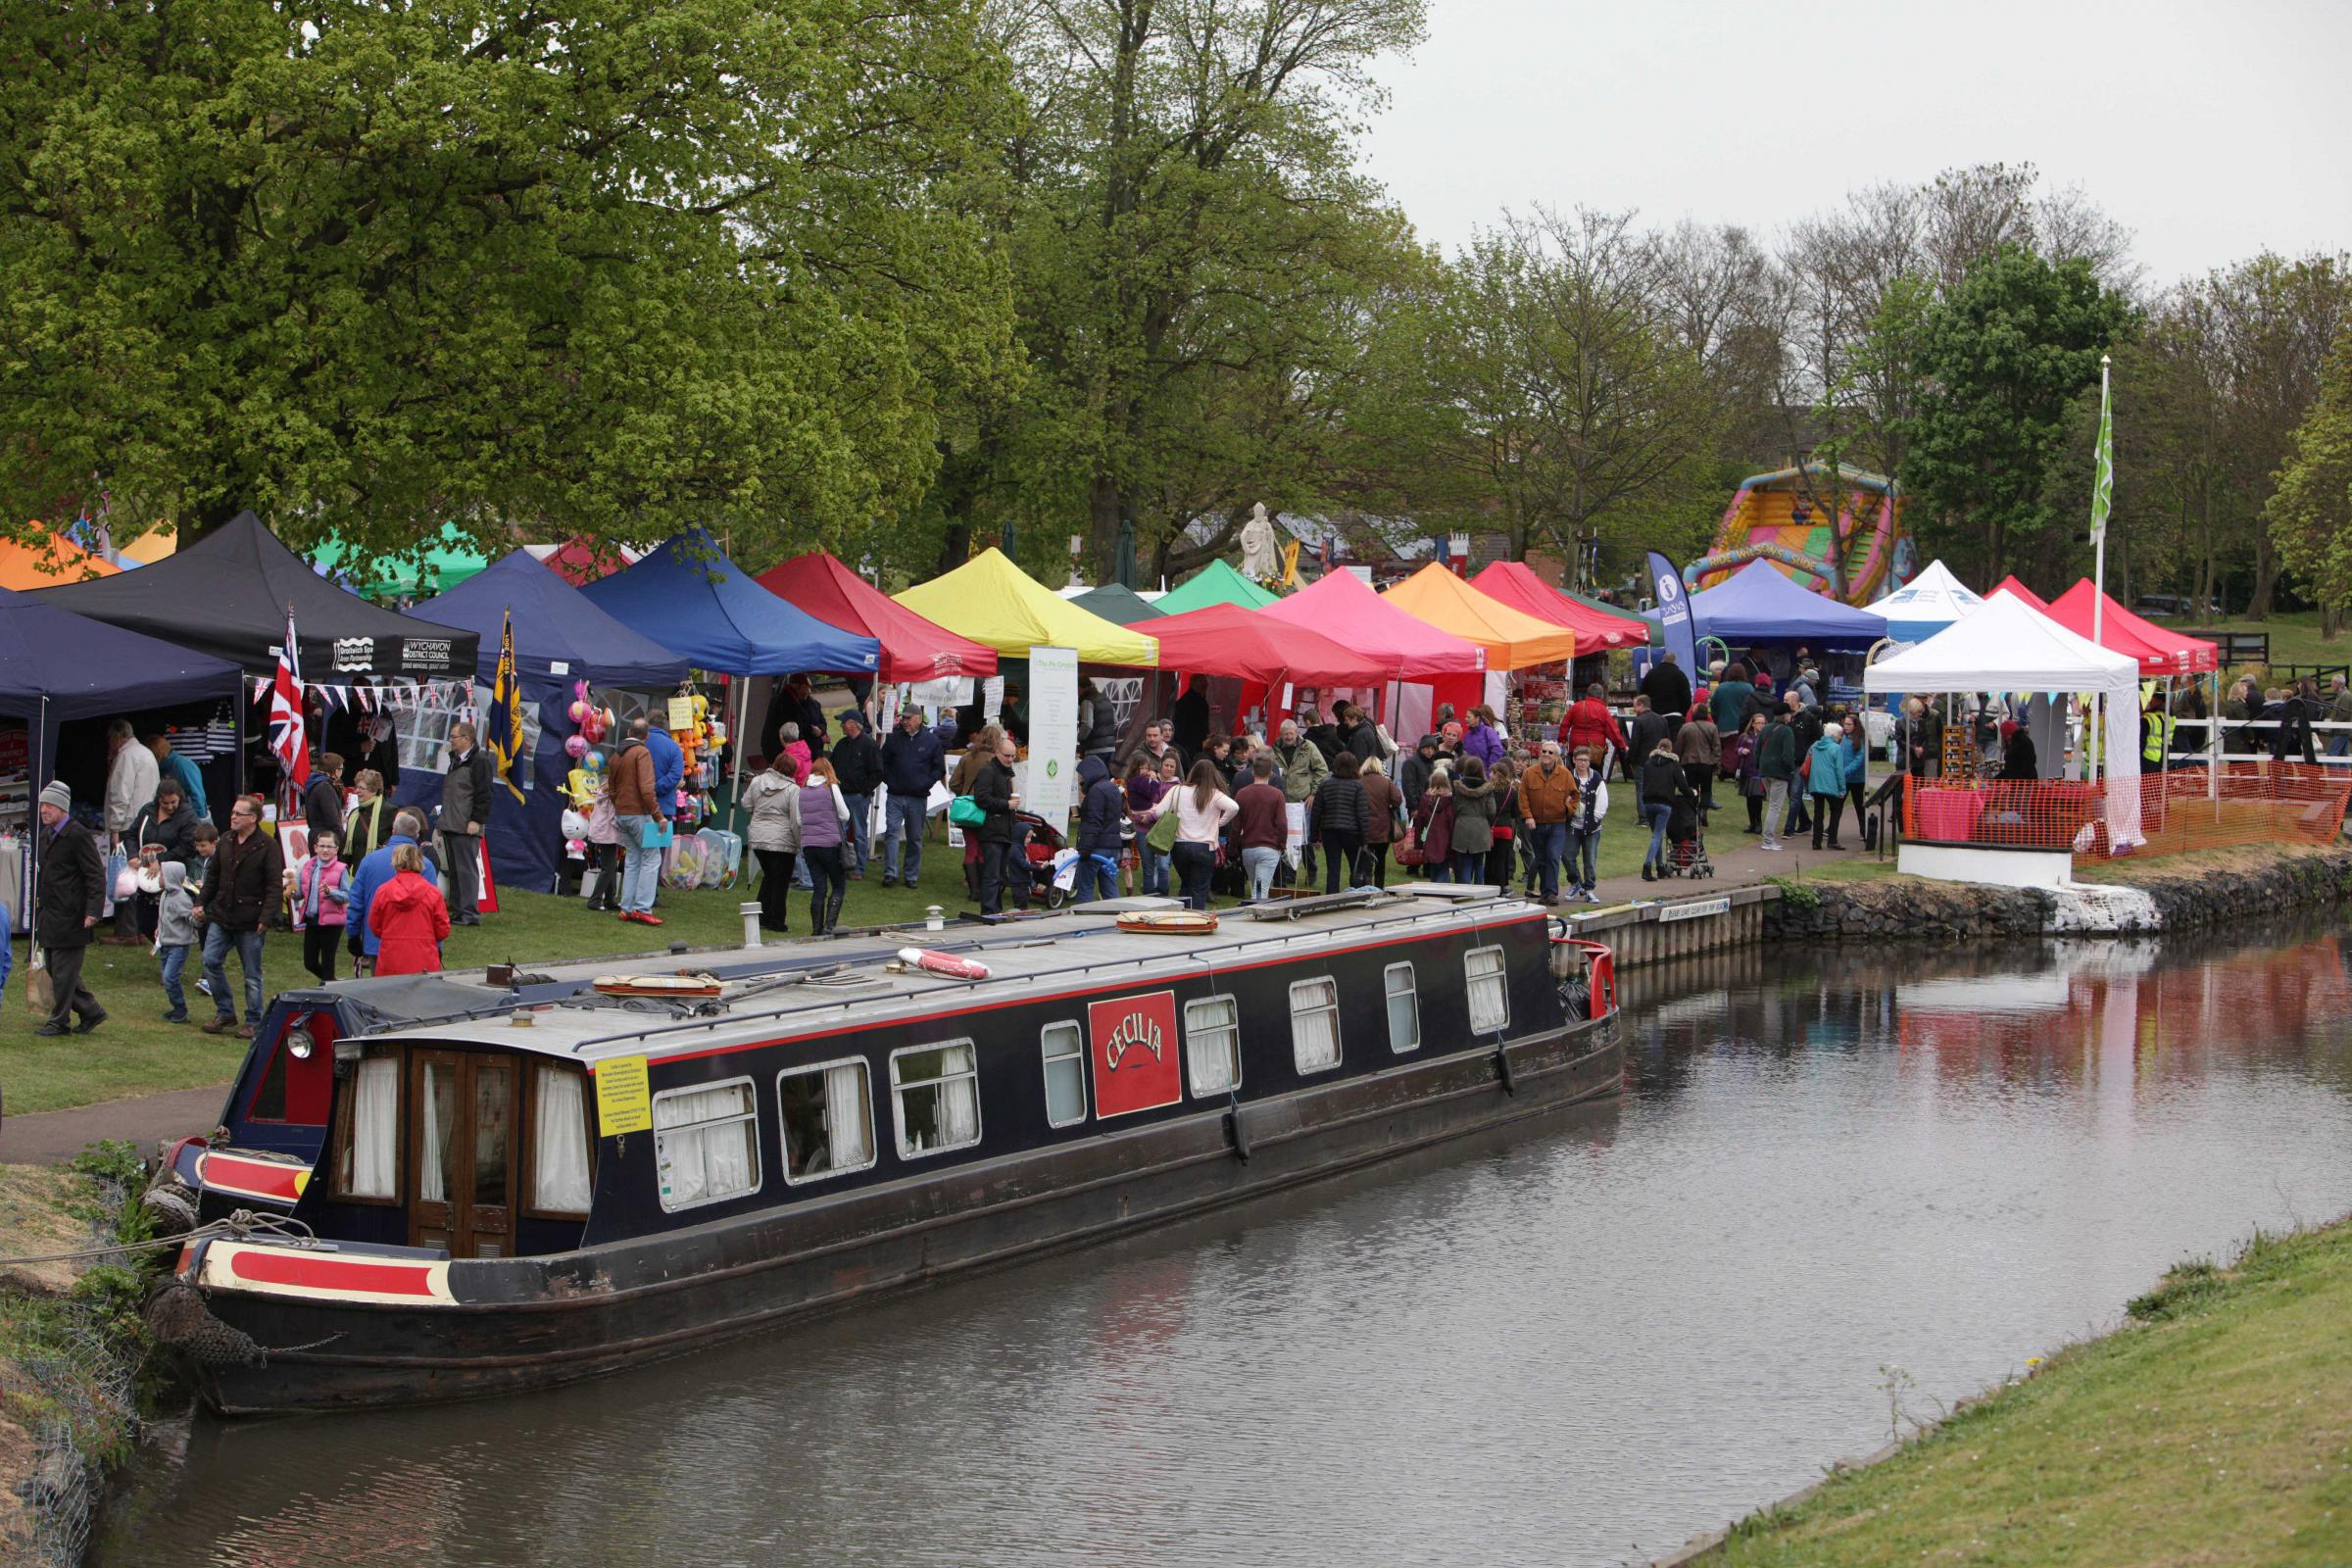 St. Richard's Boat and Car Festival